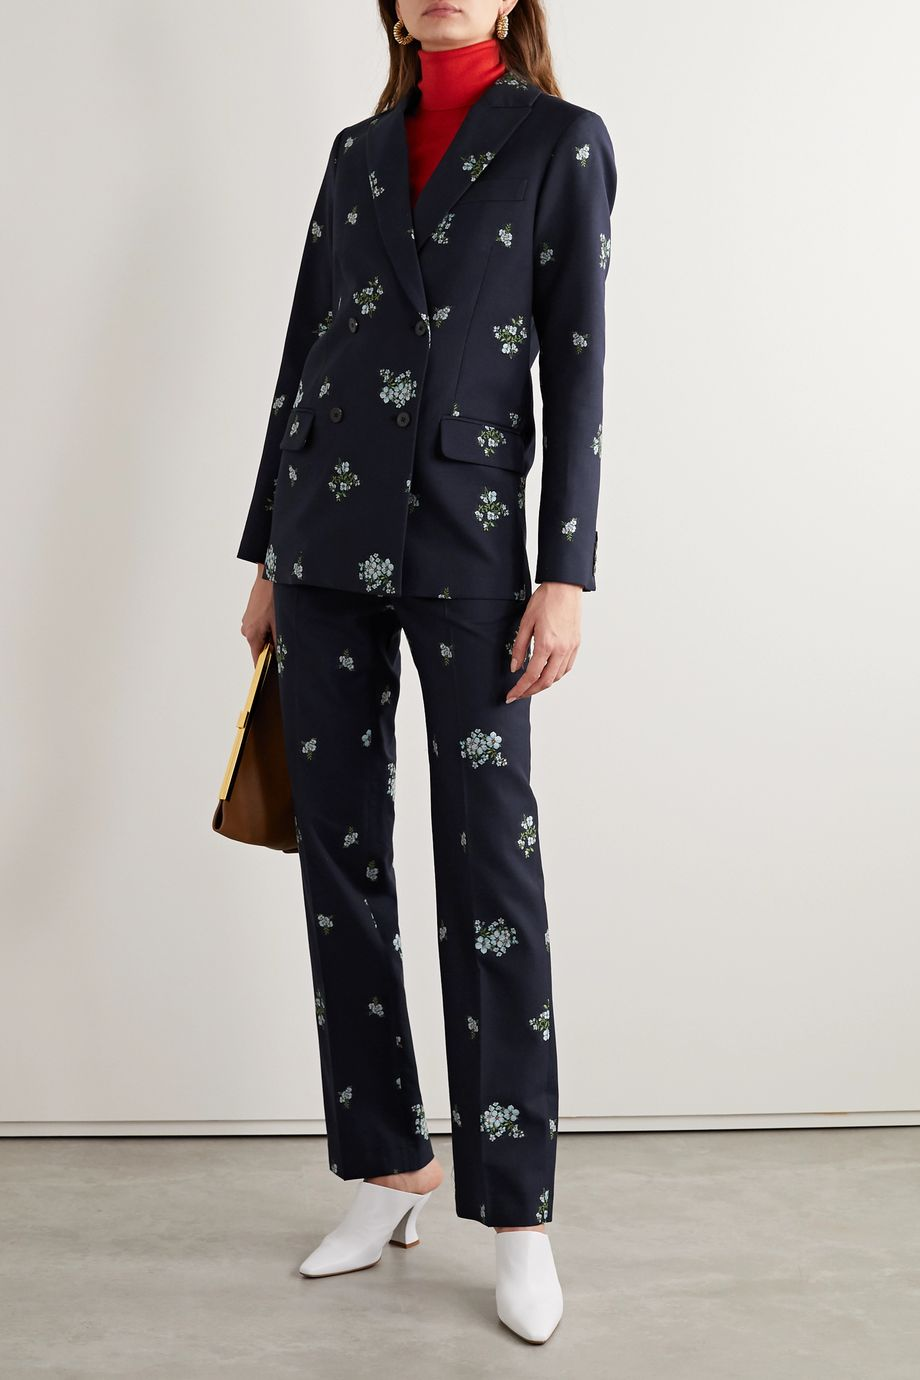 Paul & Joe Cotton-blend floral-jacquard straight-leg pants